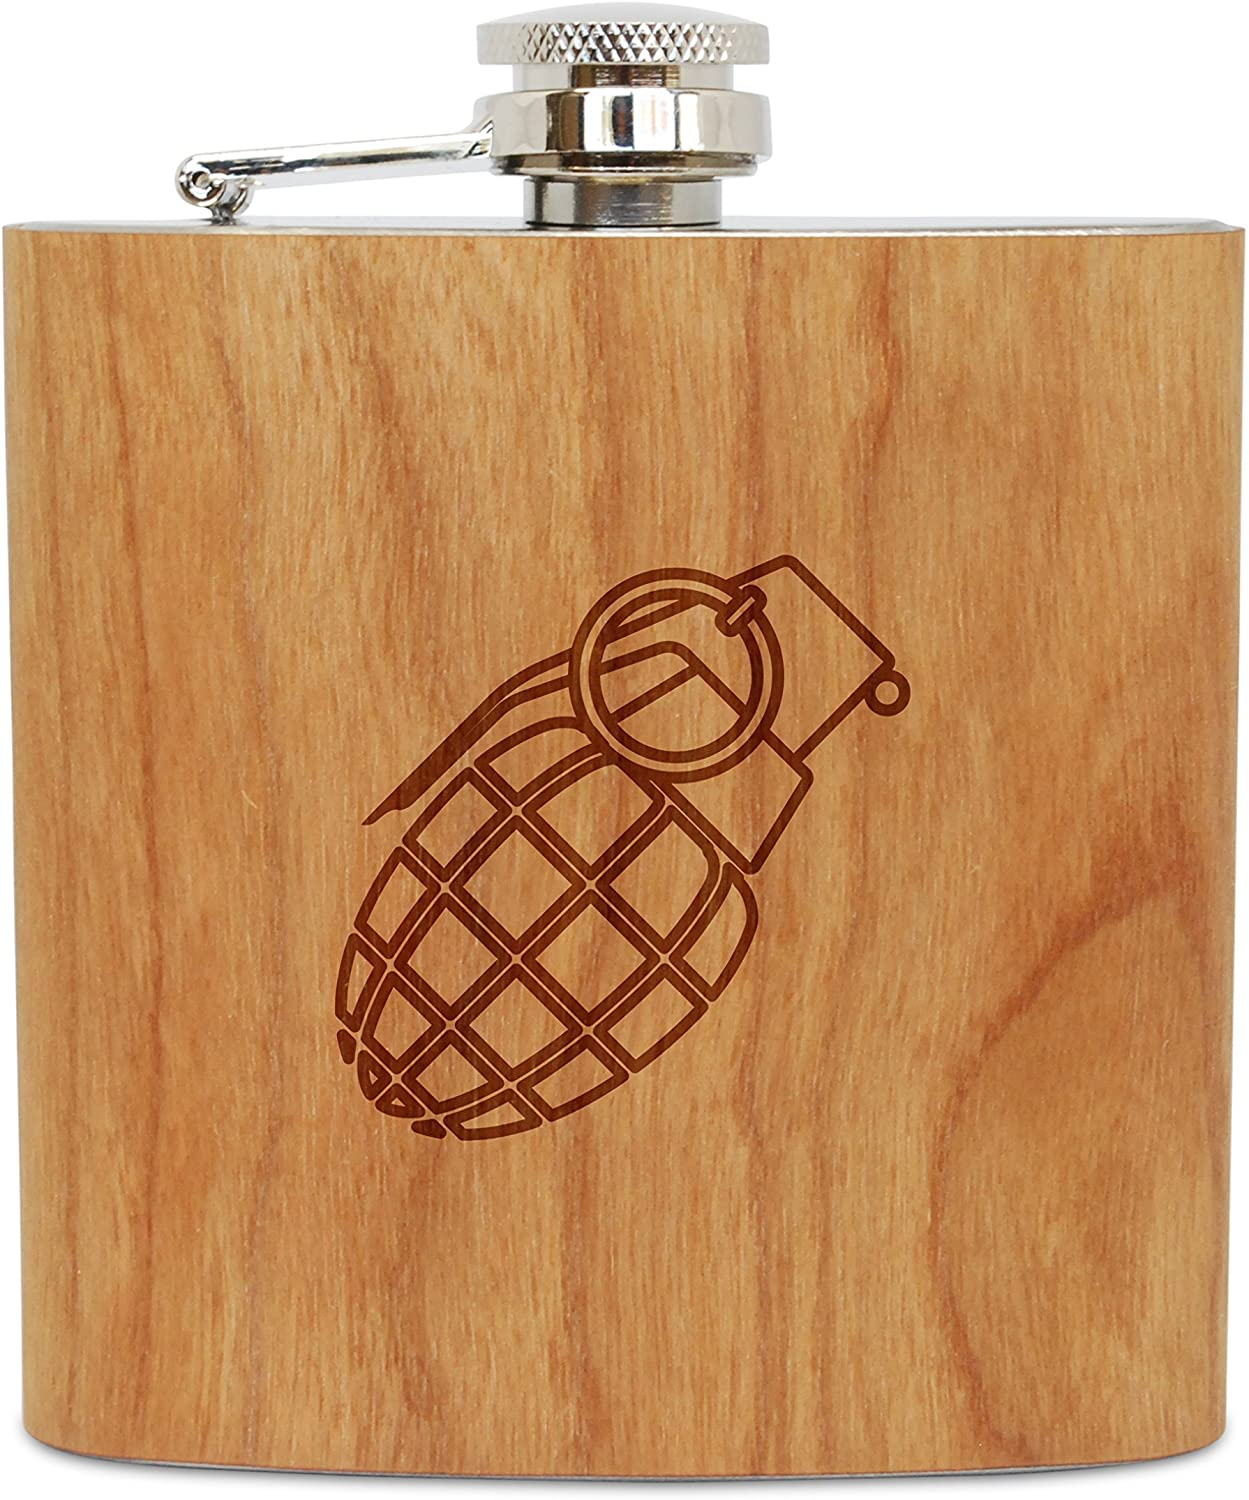 WOODEN ACCESSORIES COMPANY Cherry Wood Flask With Stainless Steel Body - Laser Engraved Flask With Grenade Design - 6 Oz Wood Hip Flask Handmade In USA